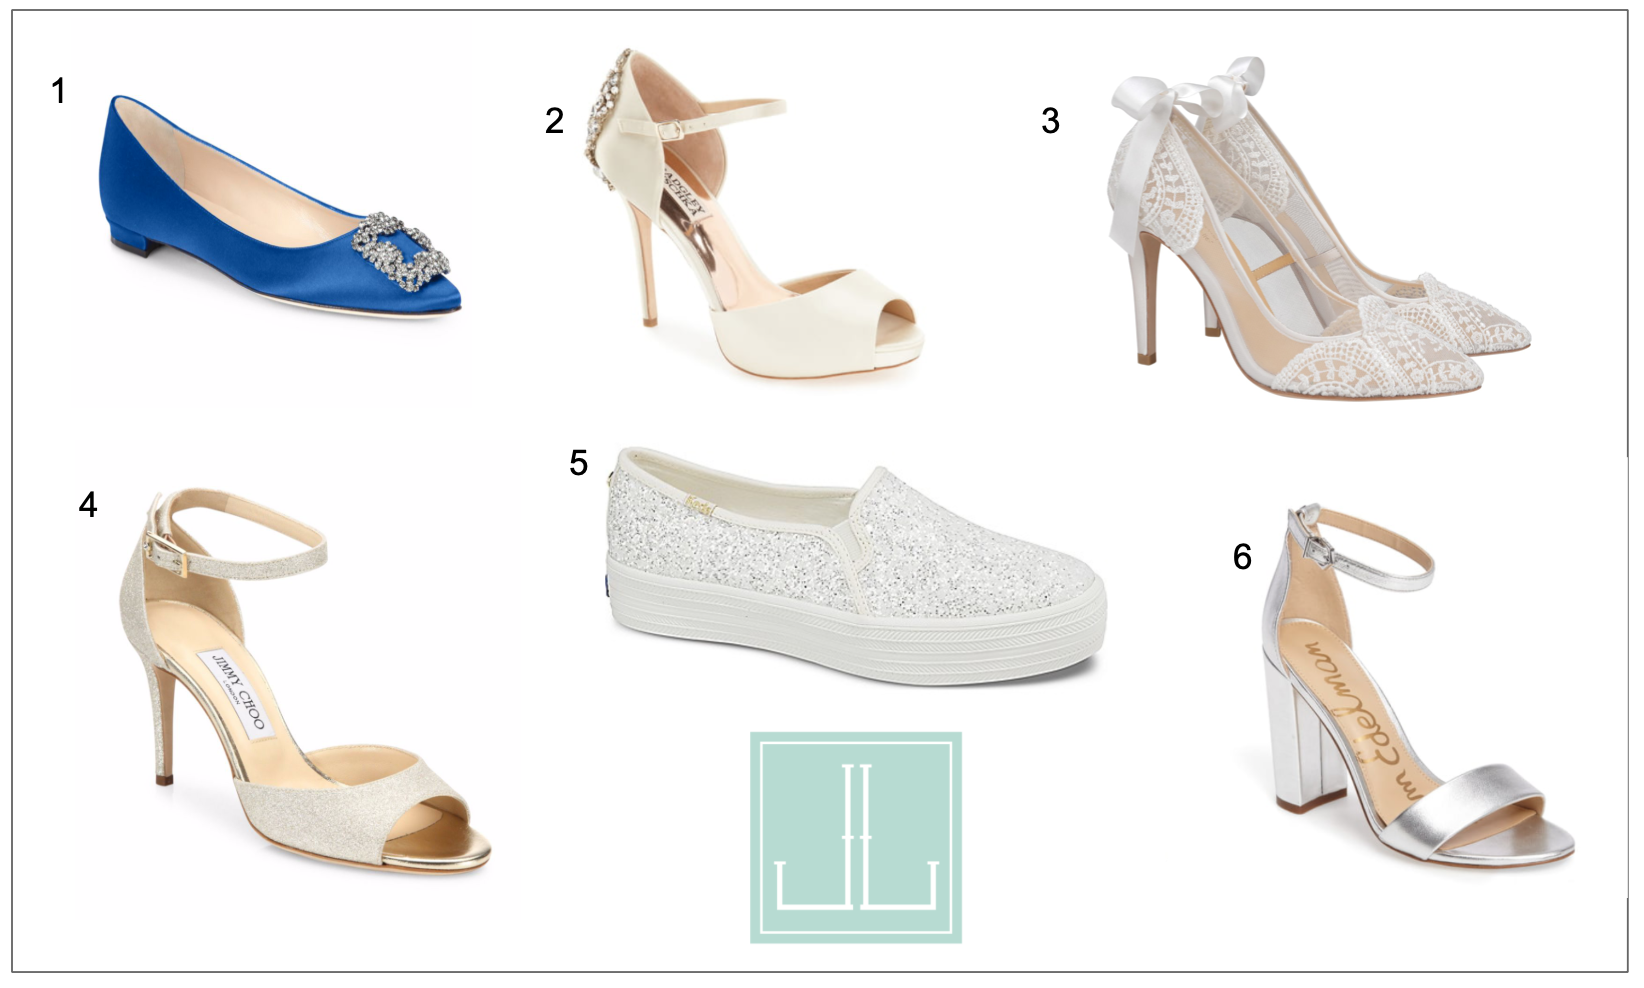 1)  Minolo Blahnik Hangisi 25 Ebelished Satin Flats   2)  Badgley Mischka 'Dawn' Crystal Back d'Orsay Pump   3)  Bella Belle Giselle Pump   4)  Jimmy Choo Annie d'Orsay Angle Strap Glitter Sandals   5)  Keds x Kate Spade New York Tripple Decker Glitter Sneaker   6)  Sam Edelman Yaro Ankle Strap Sandal